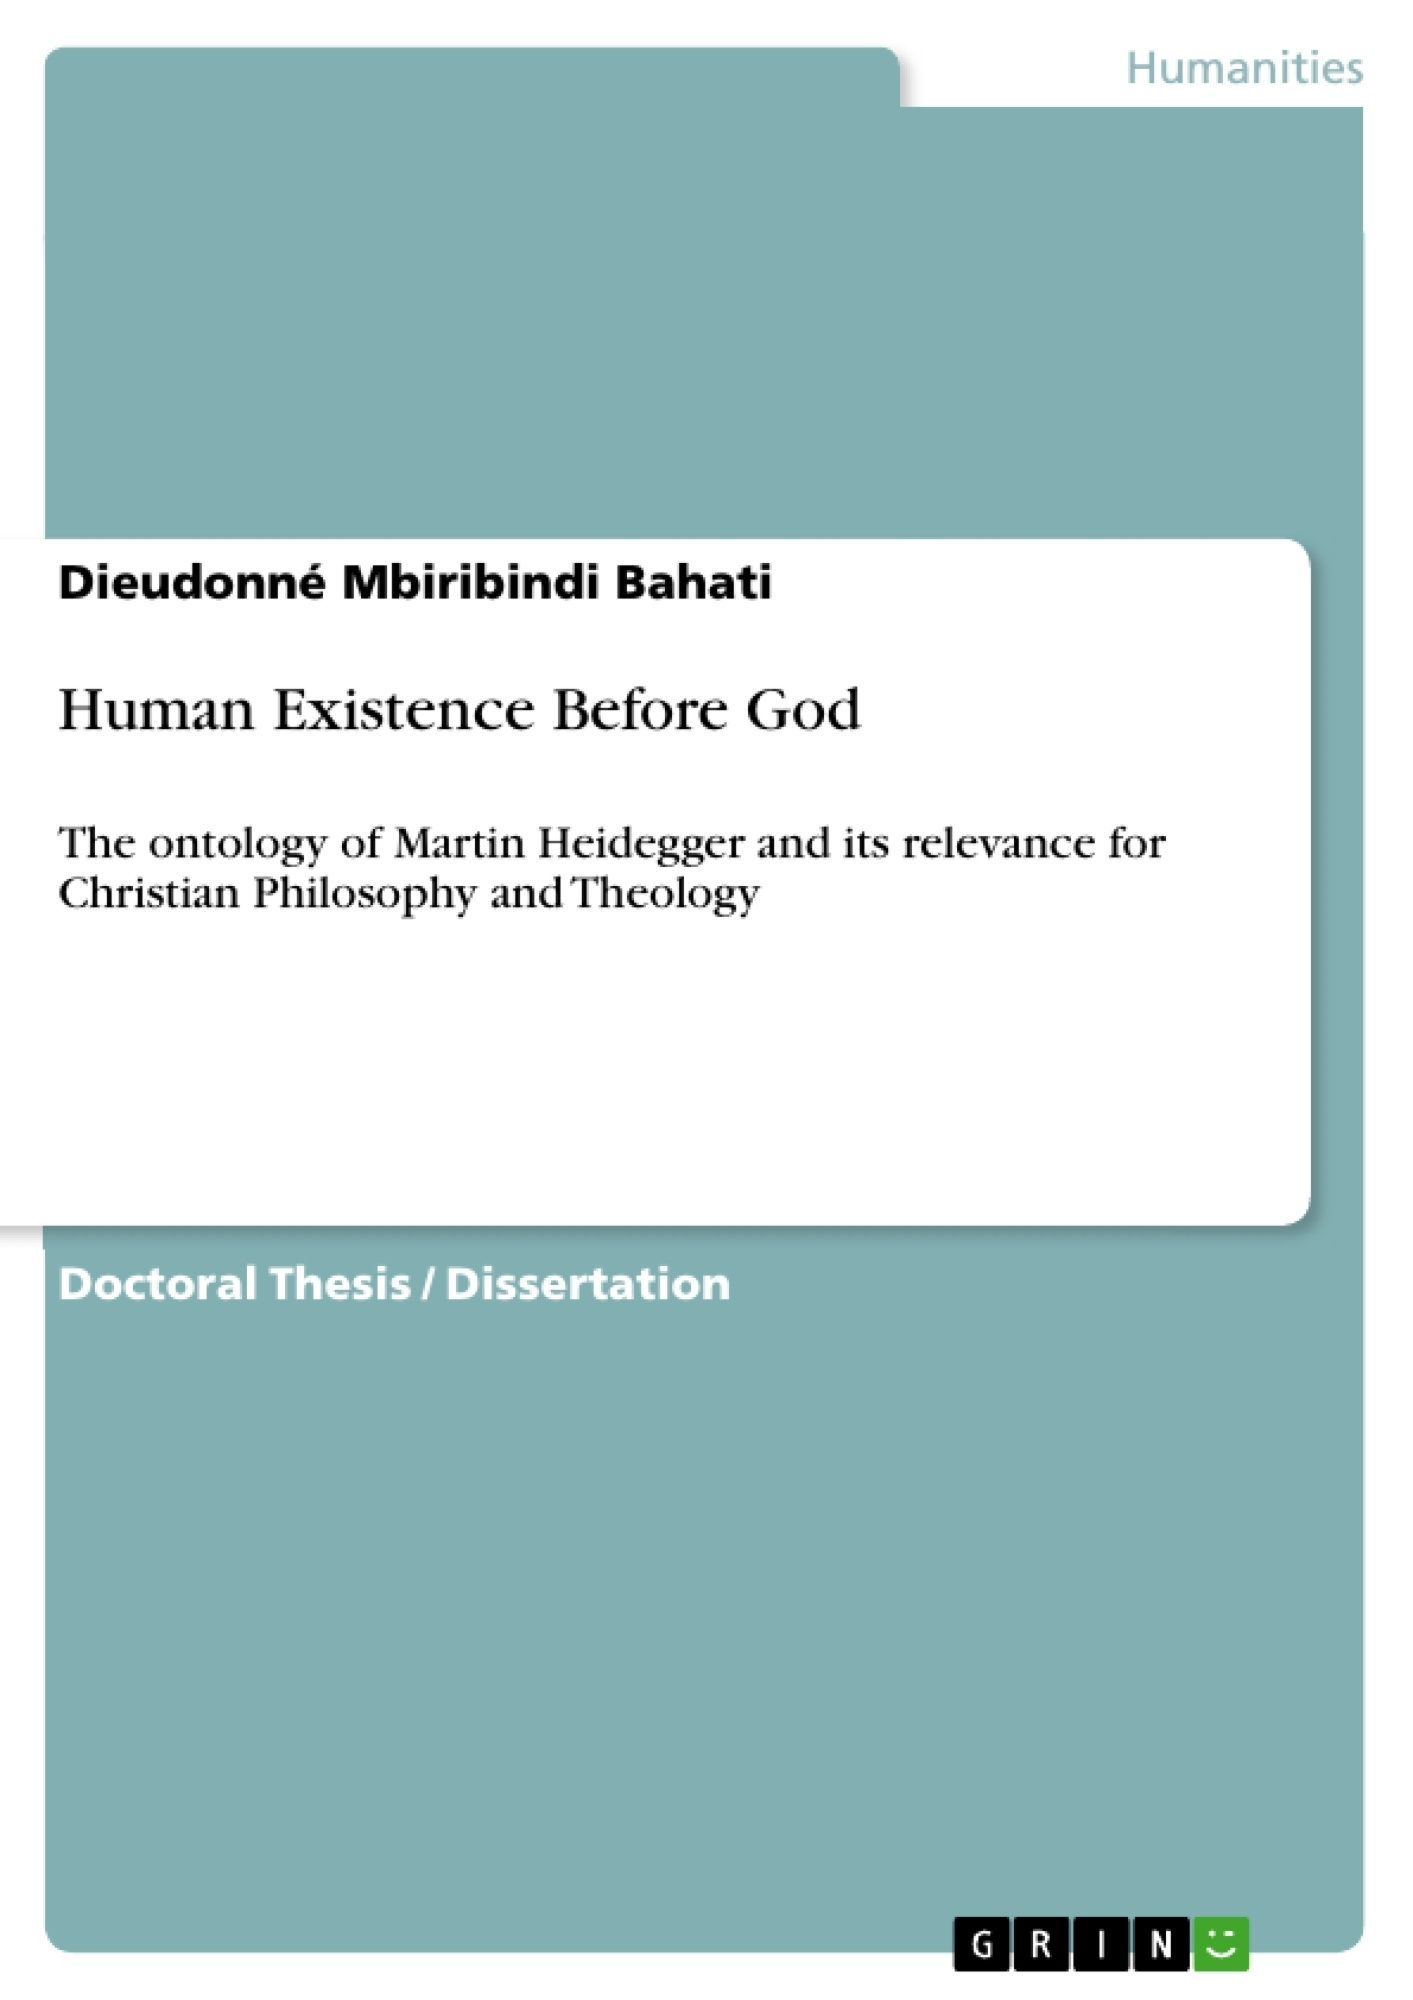 Title: Human Existence Before God